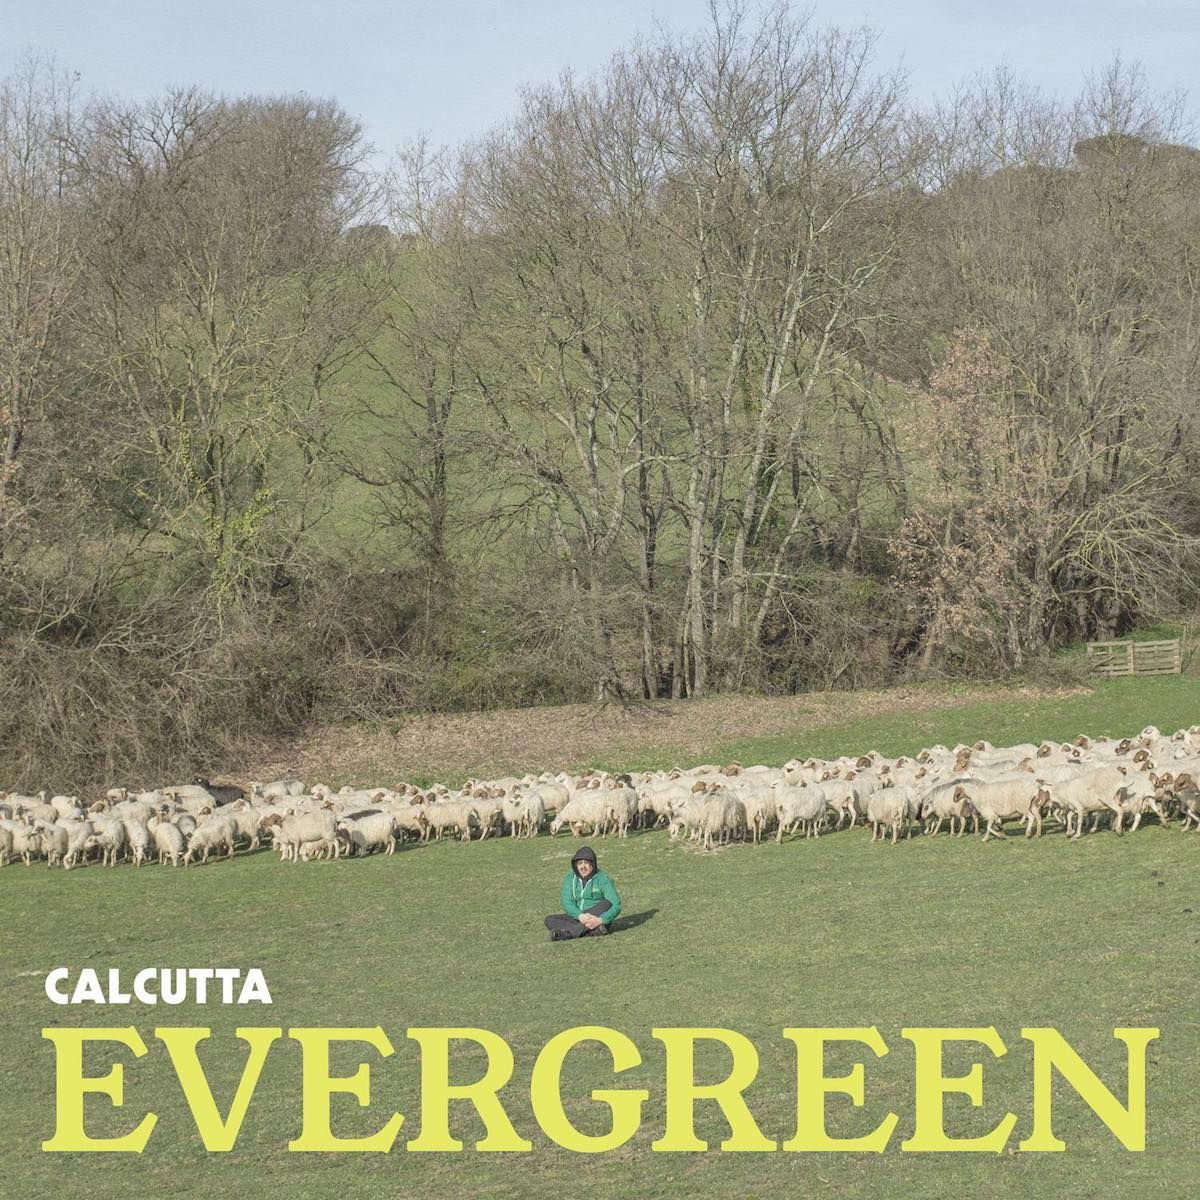 Calcutta - Evergreen album cover